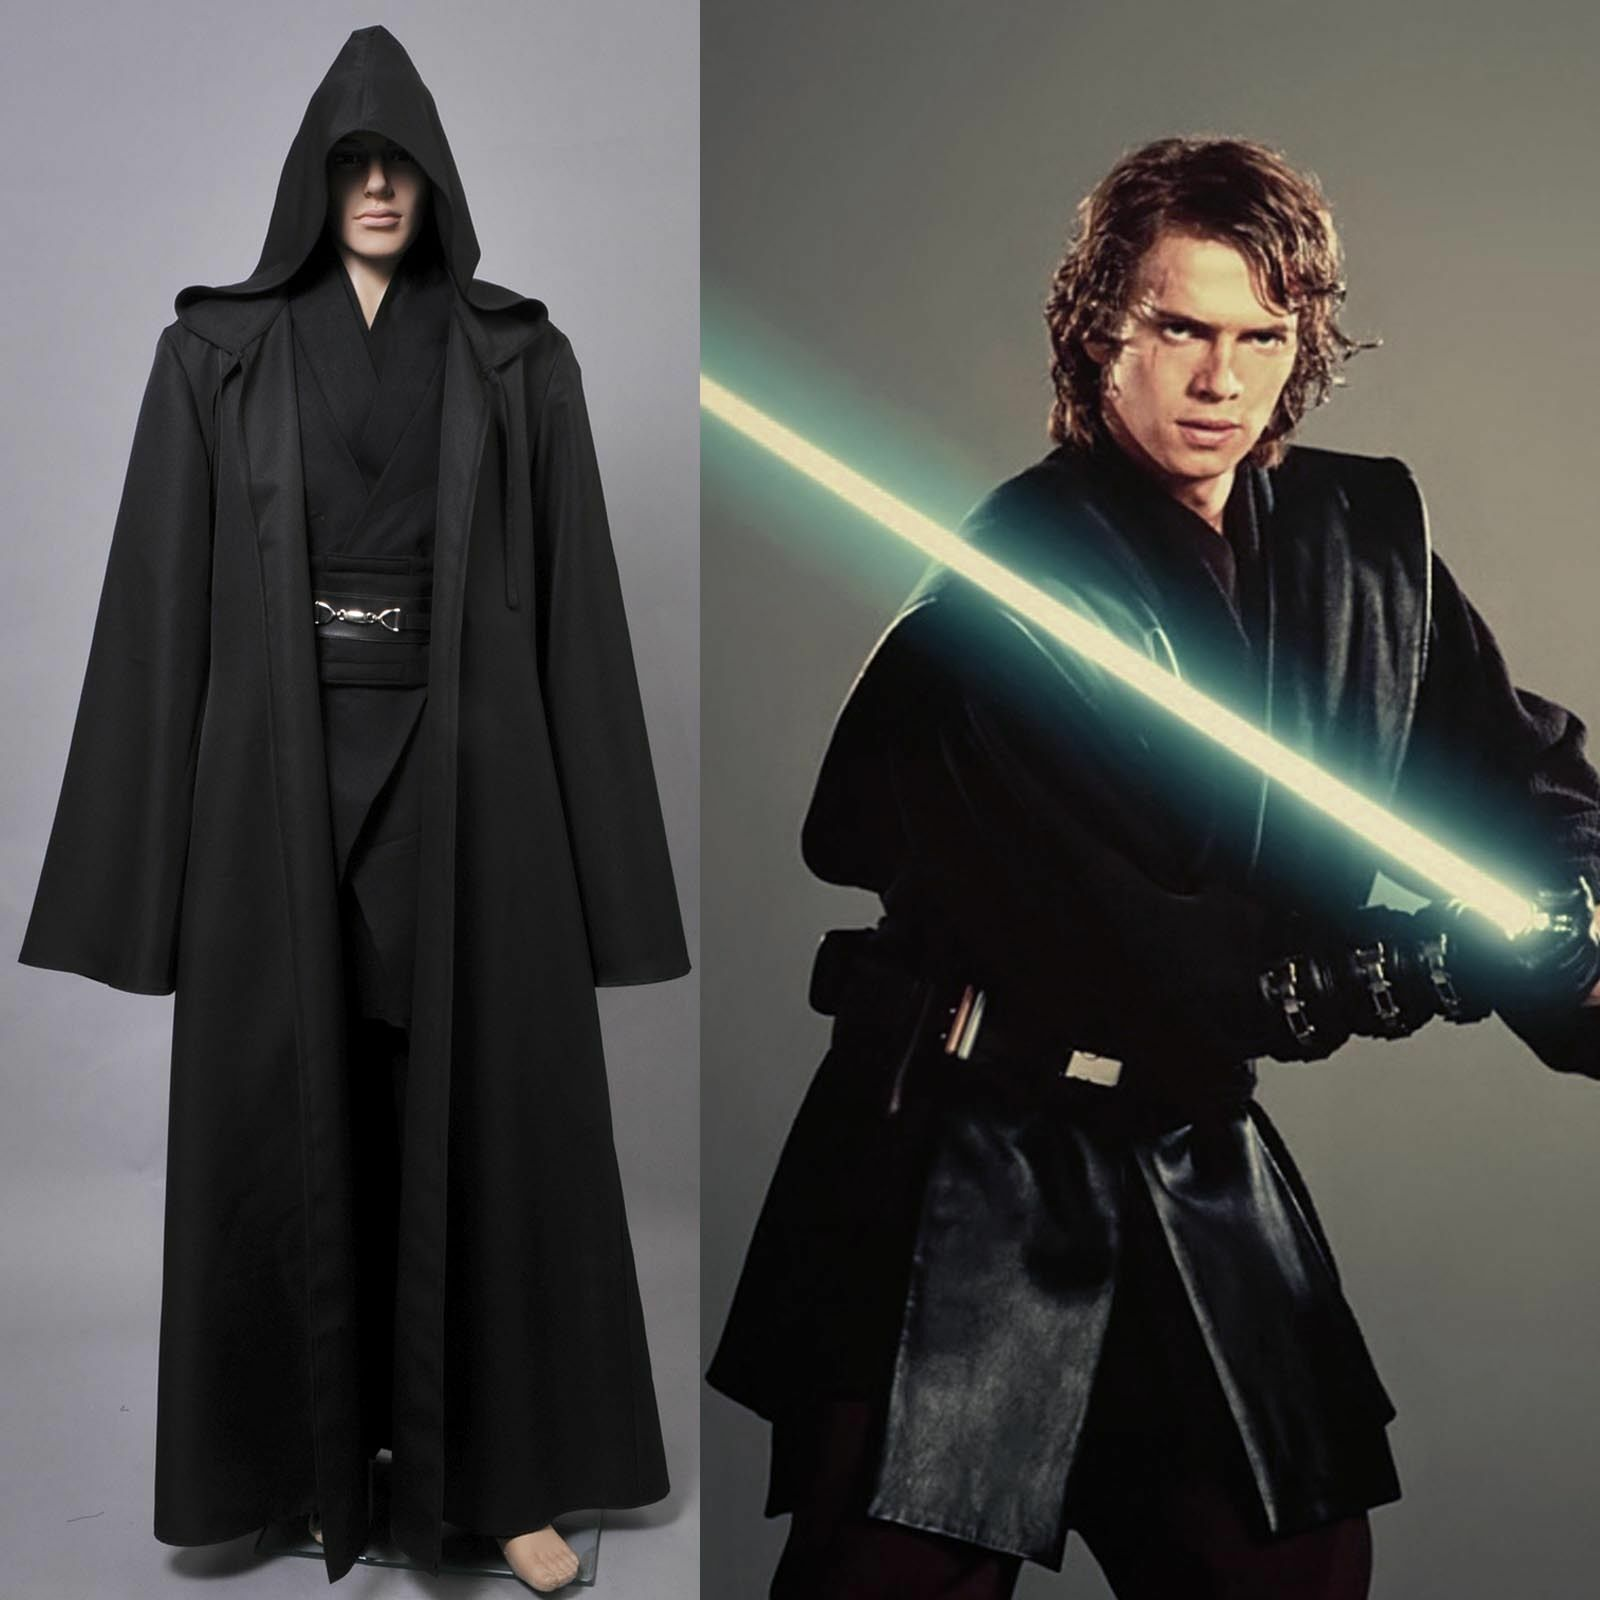 star wars jedi sith anakin skywalker halloween cosplay costume outfit tunic suit ebay. Black Bedroom Furniture Sets. Home Design Ideas